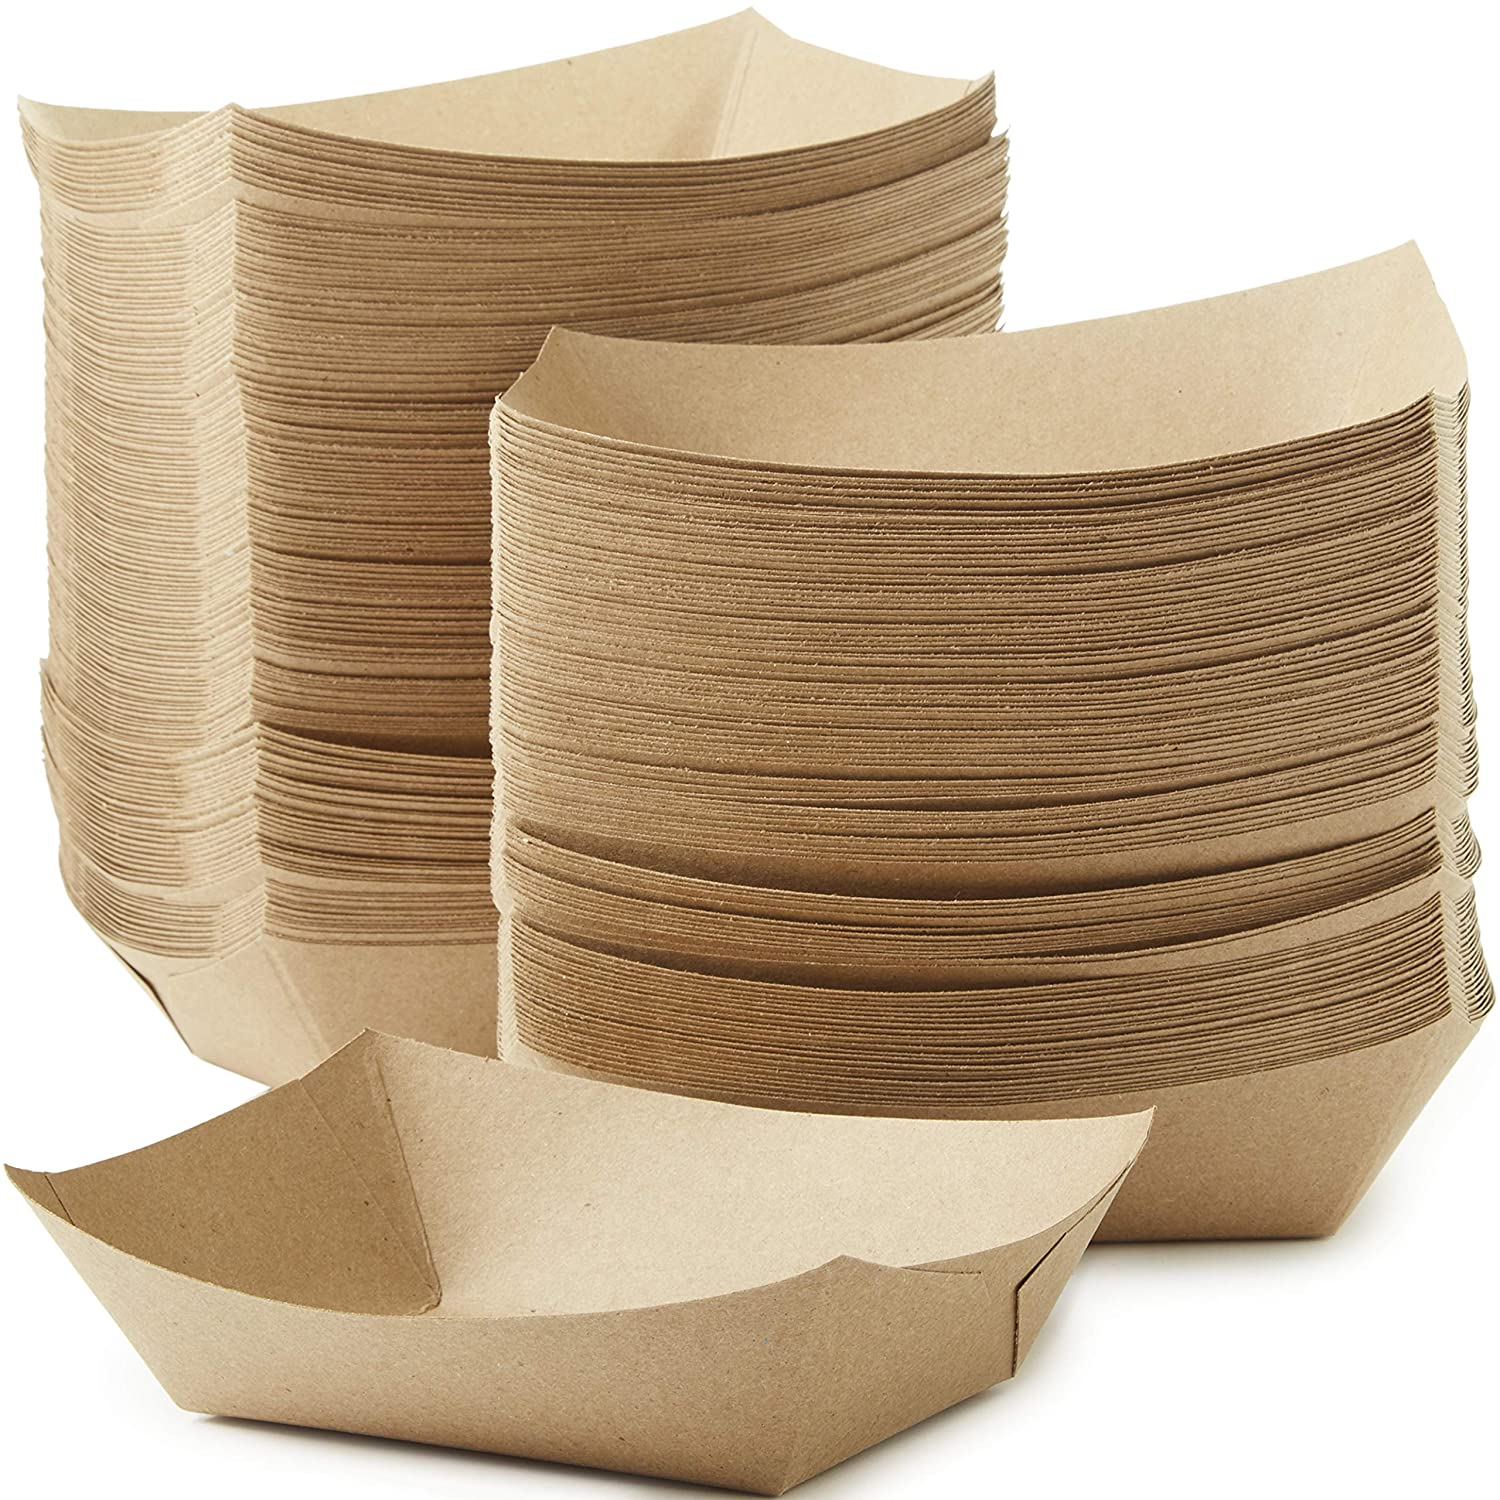 Eco Friendly, USA-Made 3lb Food Holder Trays 500 Pack. Compostable Kraft Paper Container for Diners, Concession Stands or Camping. Best Sturdy 3 Lb Disposable Party Snack Boat for Nachos, Tacos or BBQ